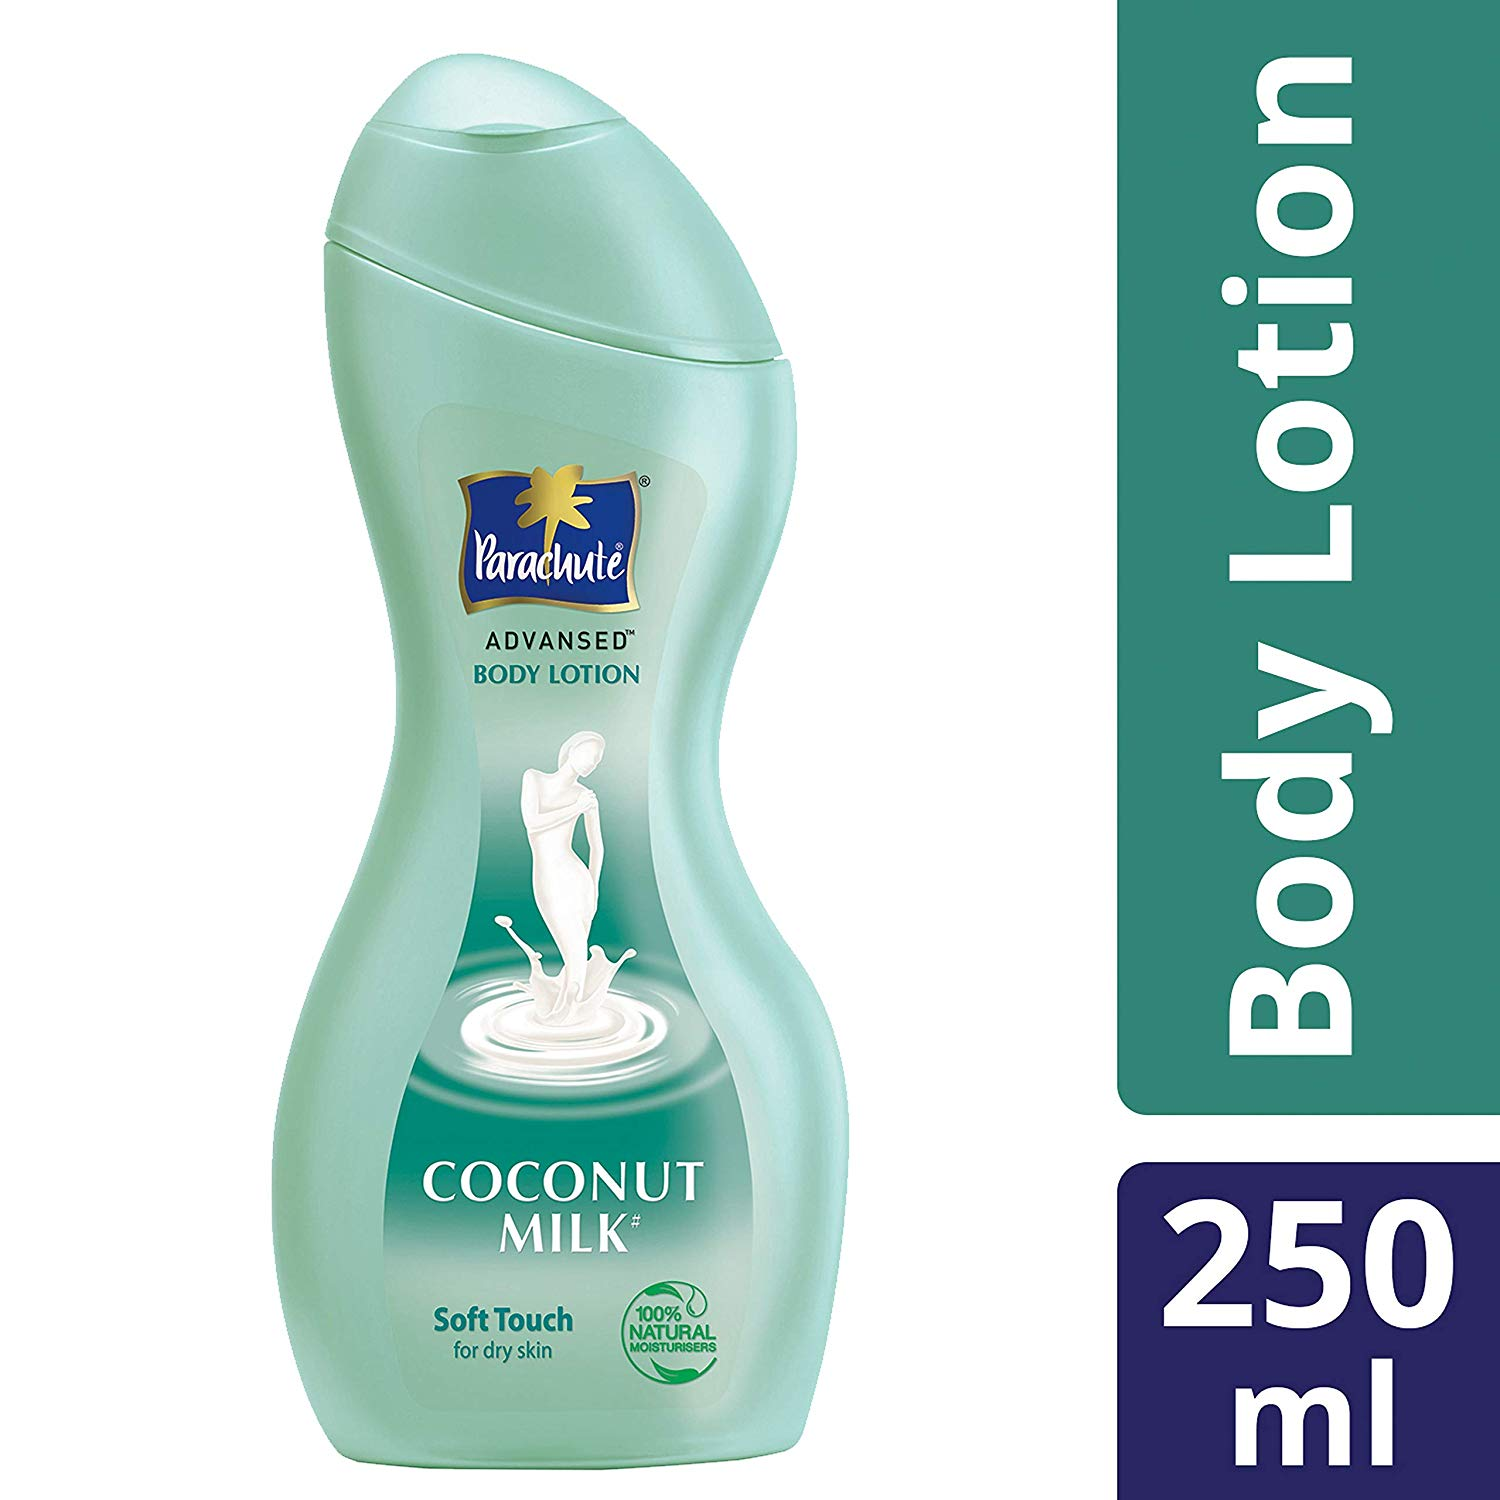 PARACHUTE ADVANSED BODY LOTION SOFT TOUCH - 250 ML